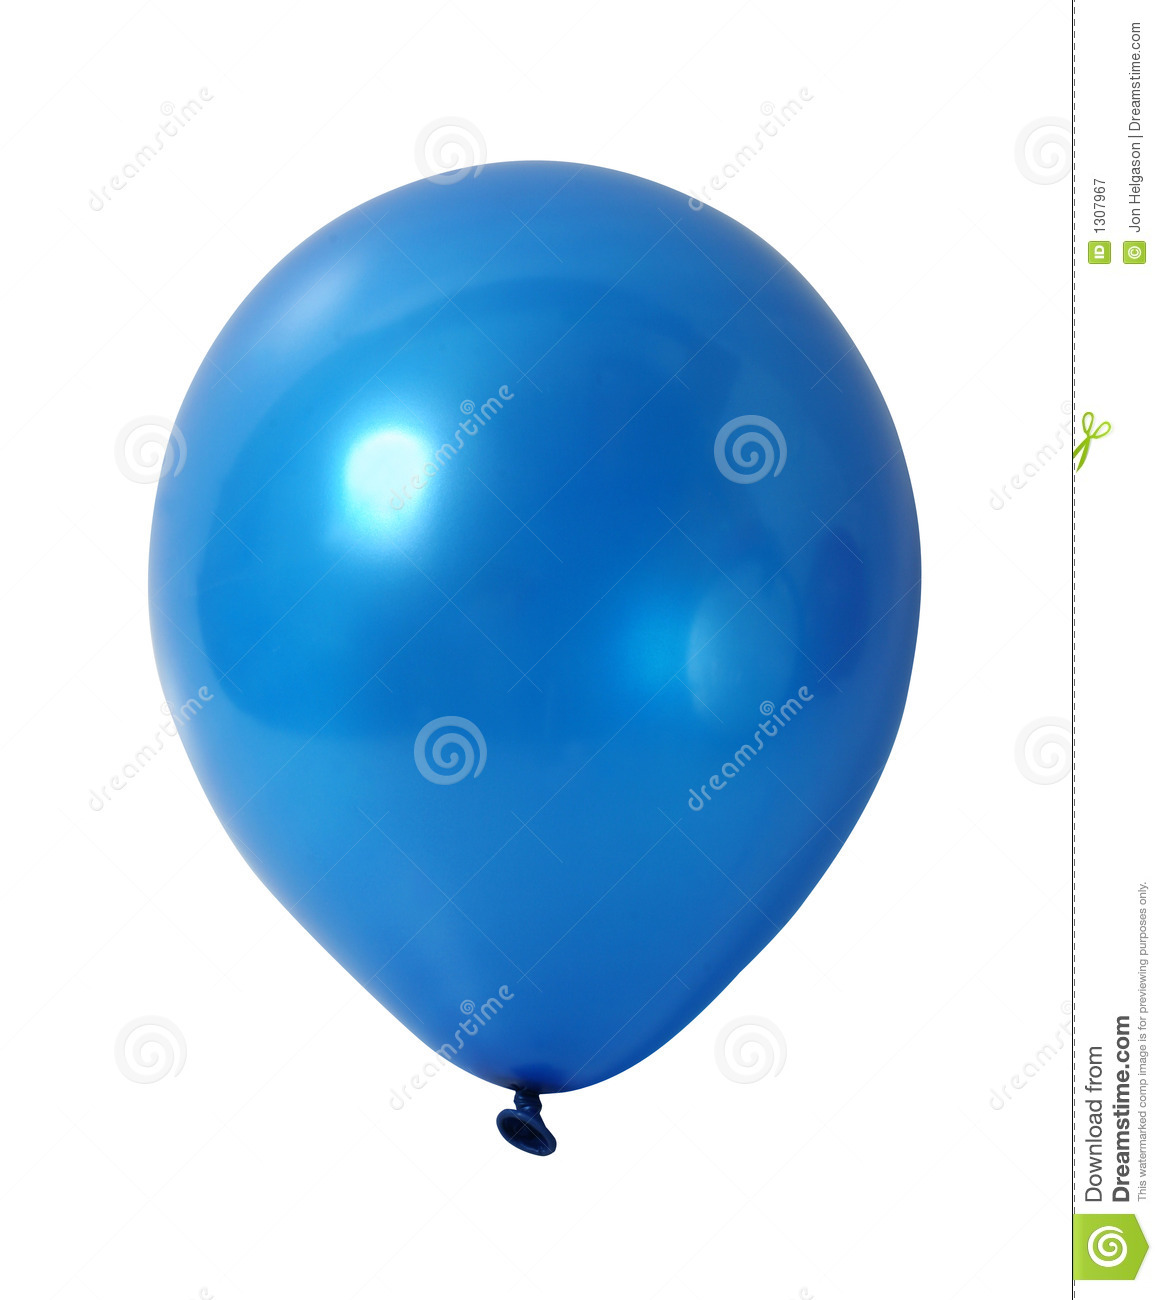 Plan Drawing Online Blue Balloon With Path Royalty Free Stock Photography